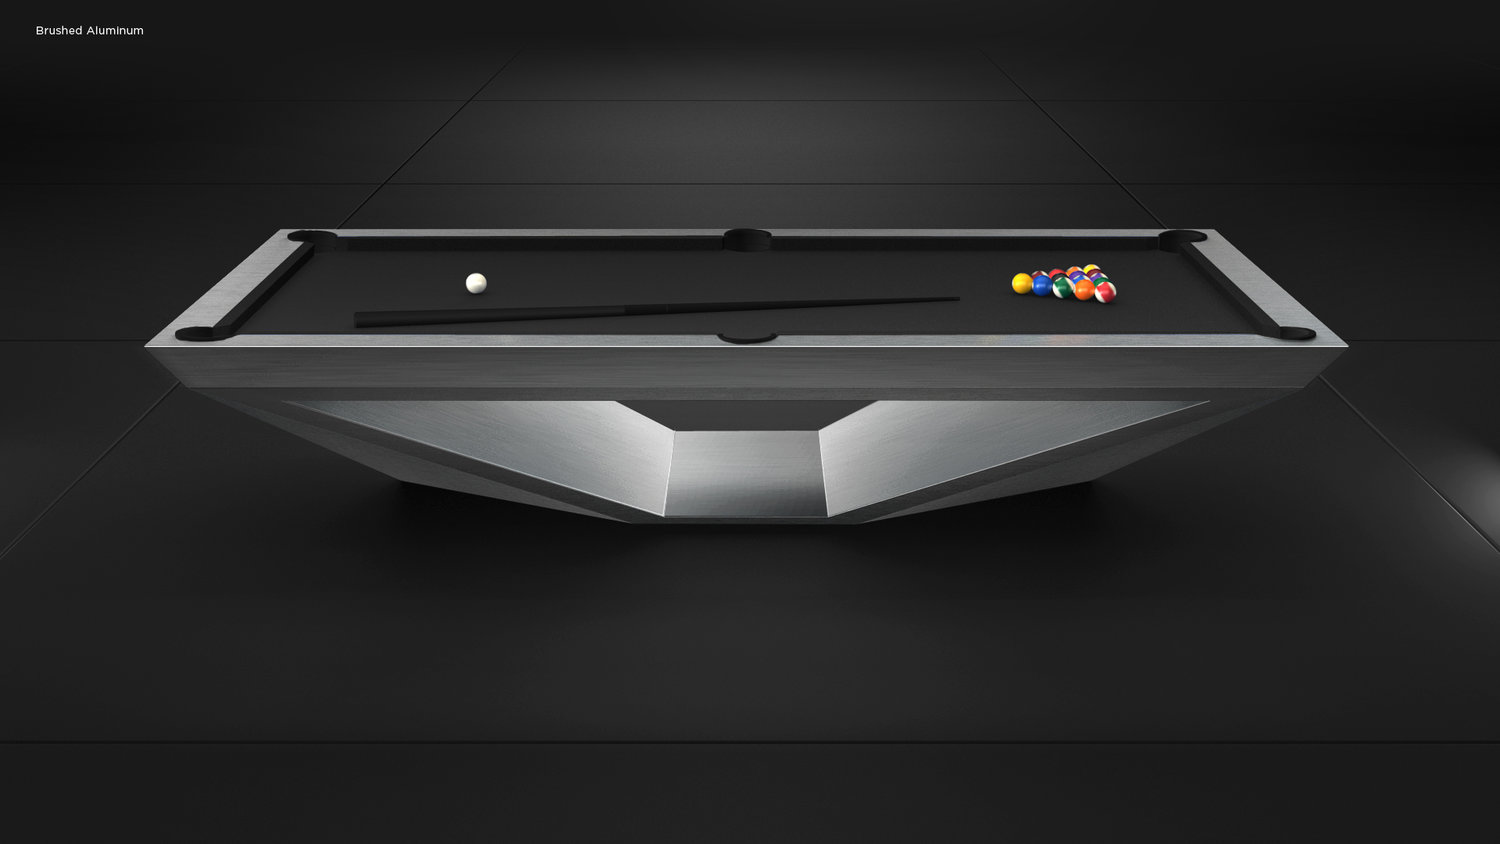 Stealth Billiards Table in Brushed Aluminum